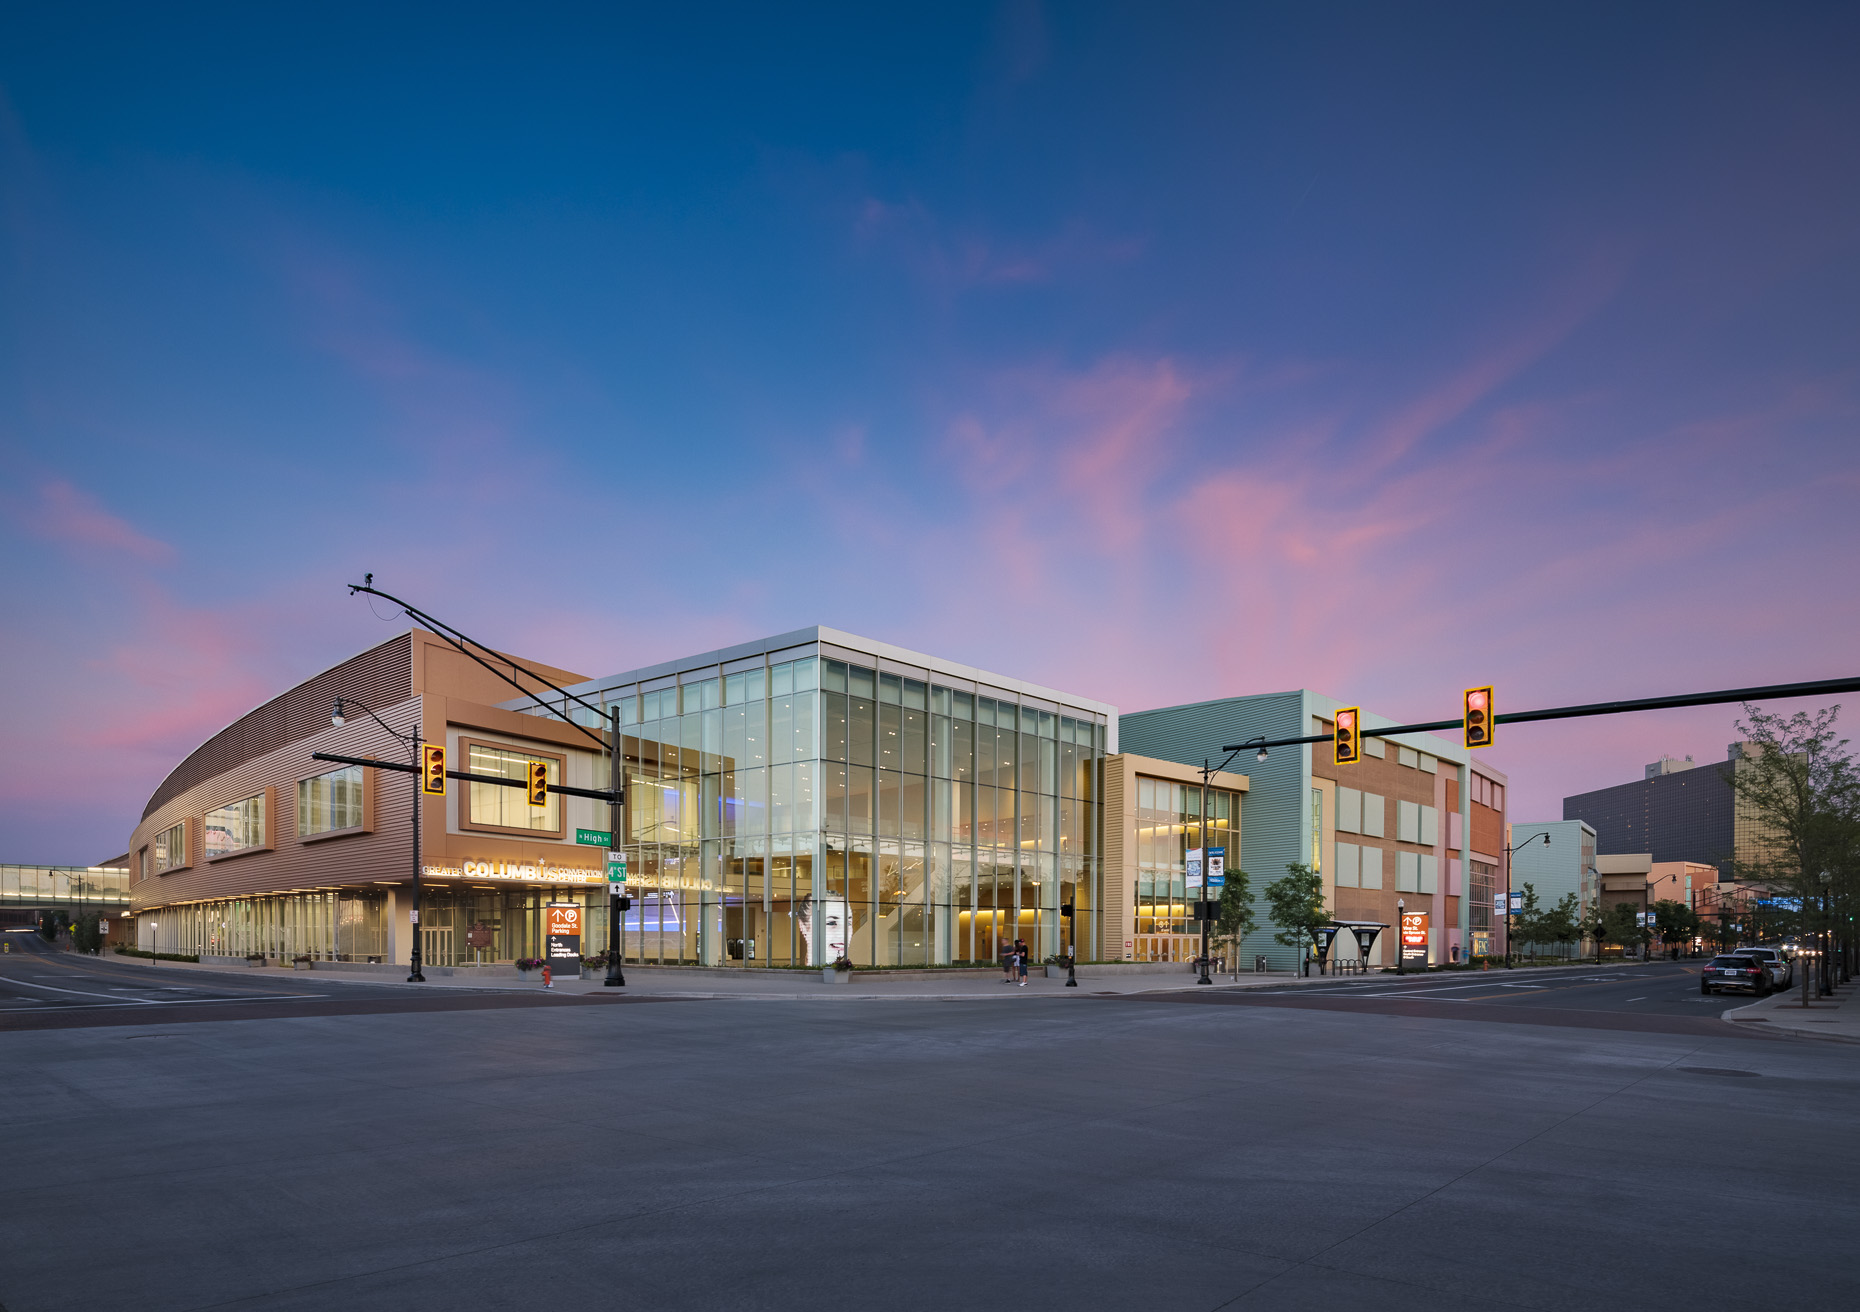 Greater Columbus Convention Center Renovation & Addition by photographed by Brad Feinknopf based in Columbus, Ohio